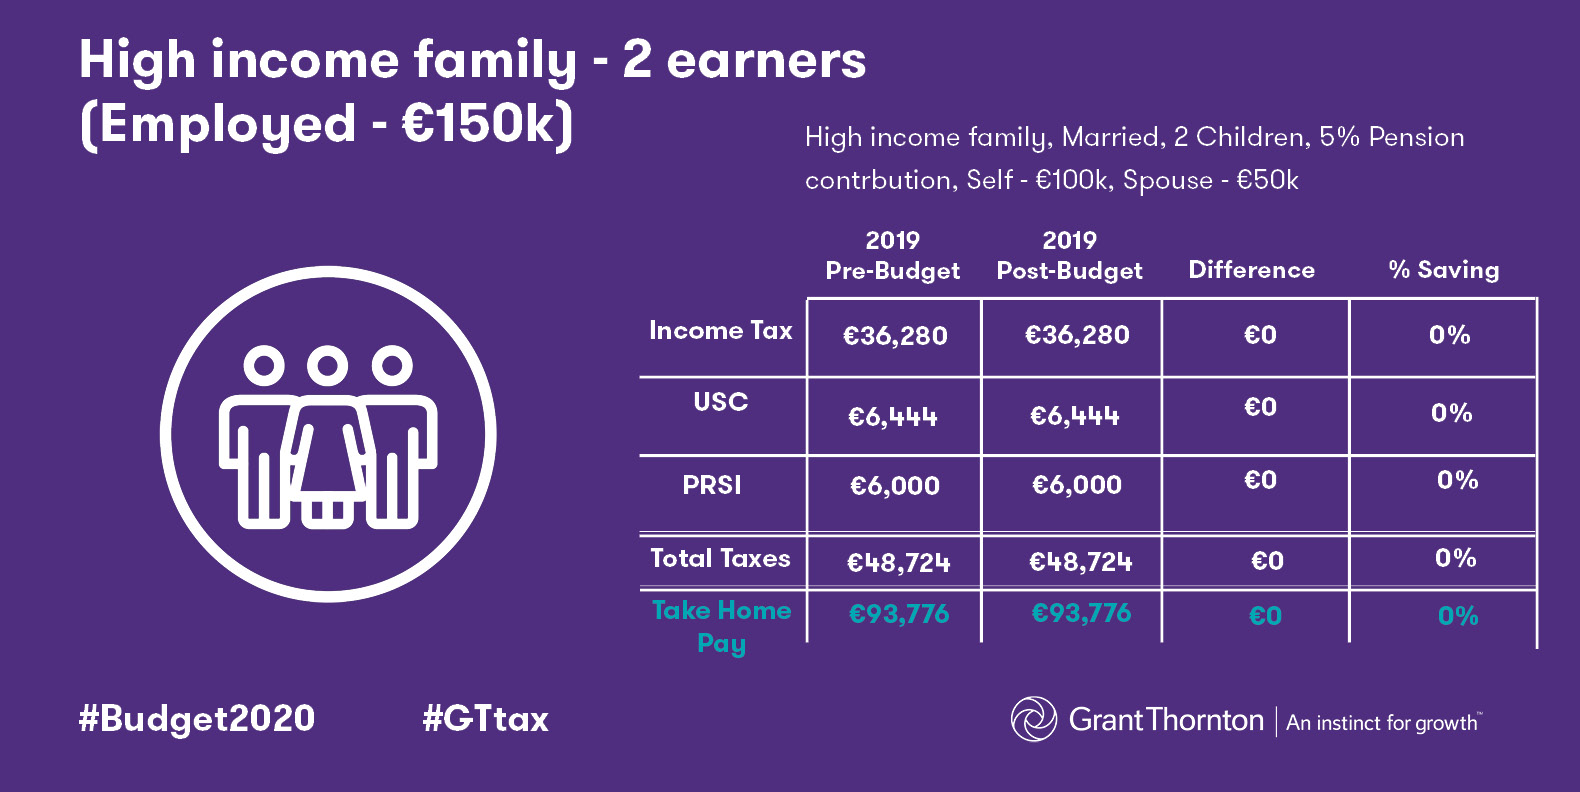 7. High income family (employed - €100k) 2020.jpg